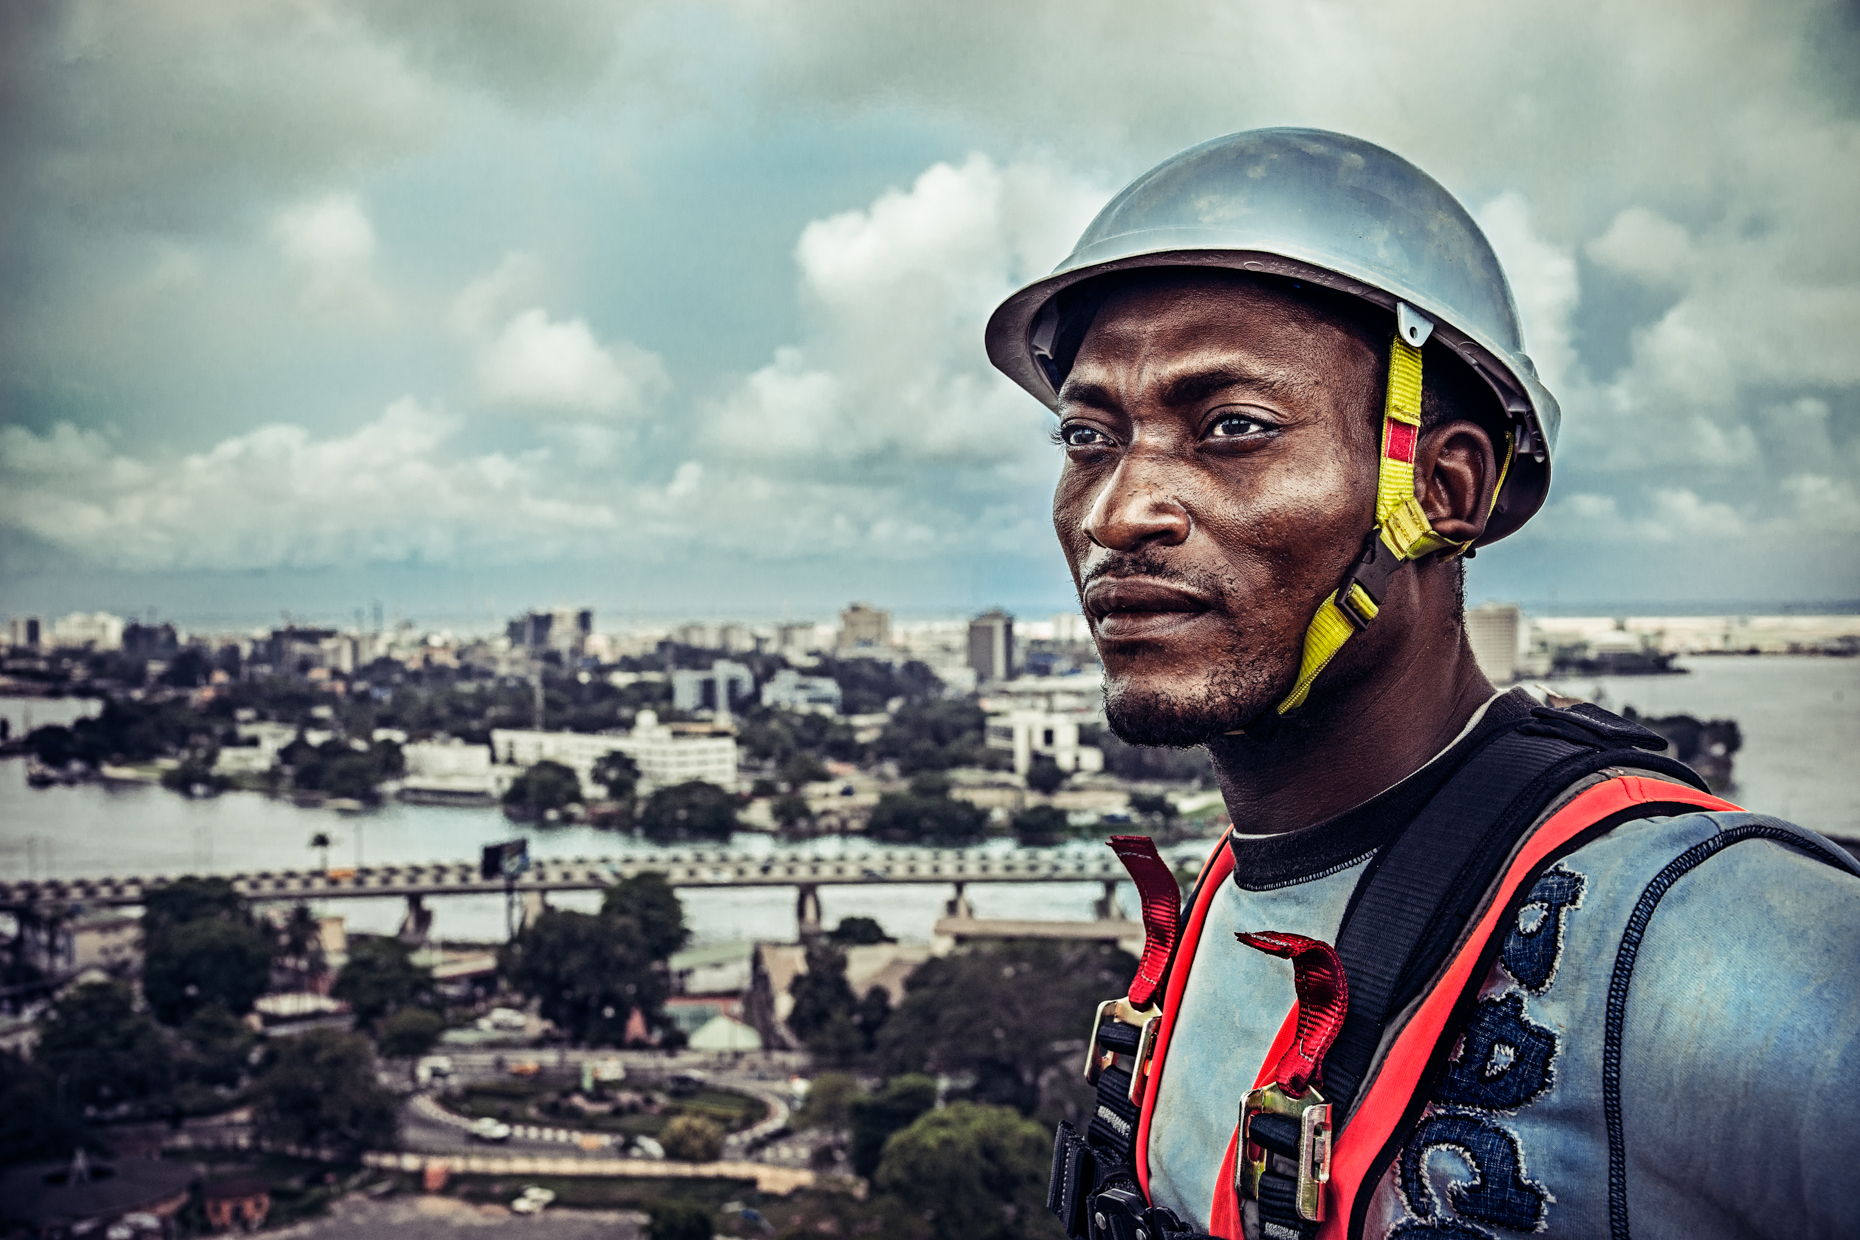 Nigerian construction worker Portrait by commercial celebrity photographer Michael Grecco